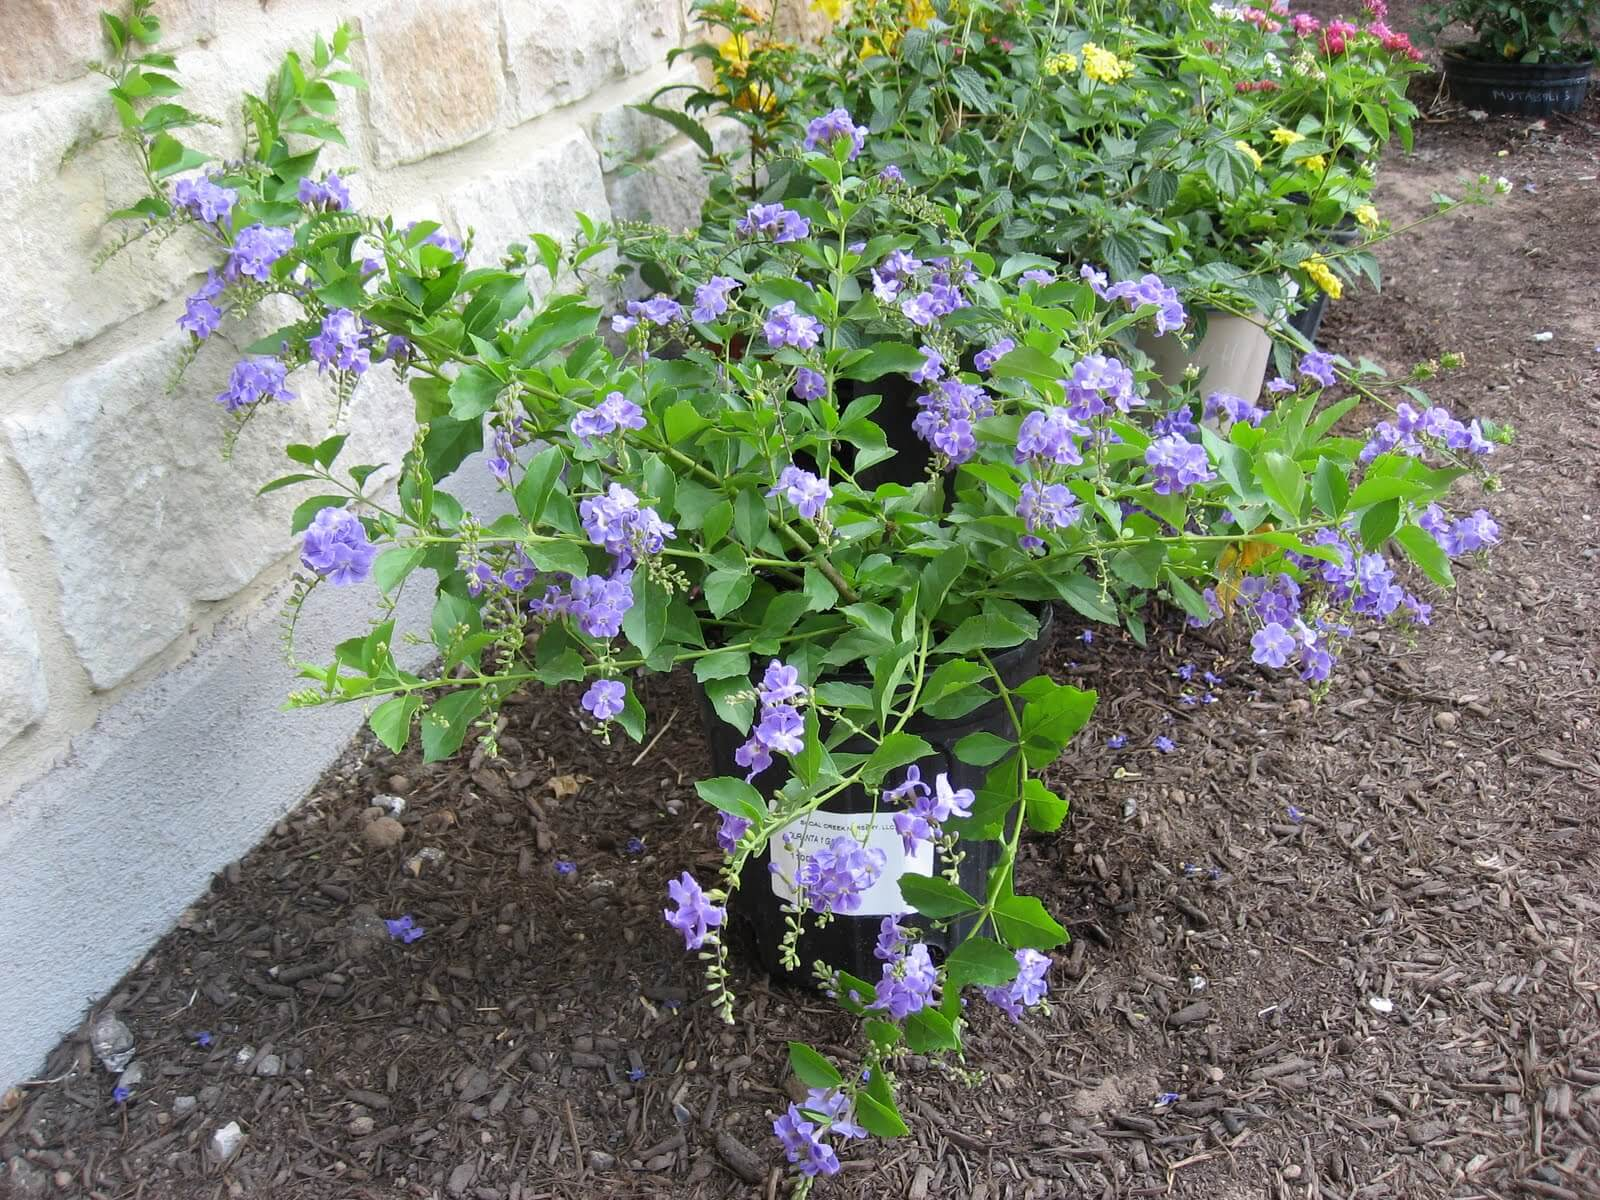 Drought Tolerant Plants For Dry Climates Like Texas With